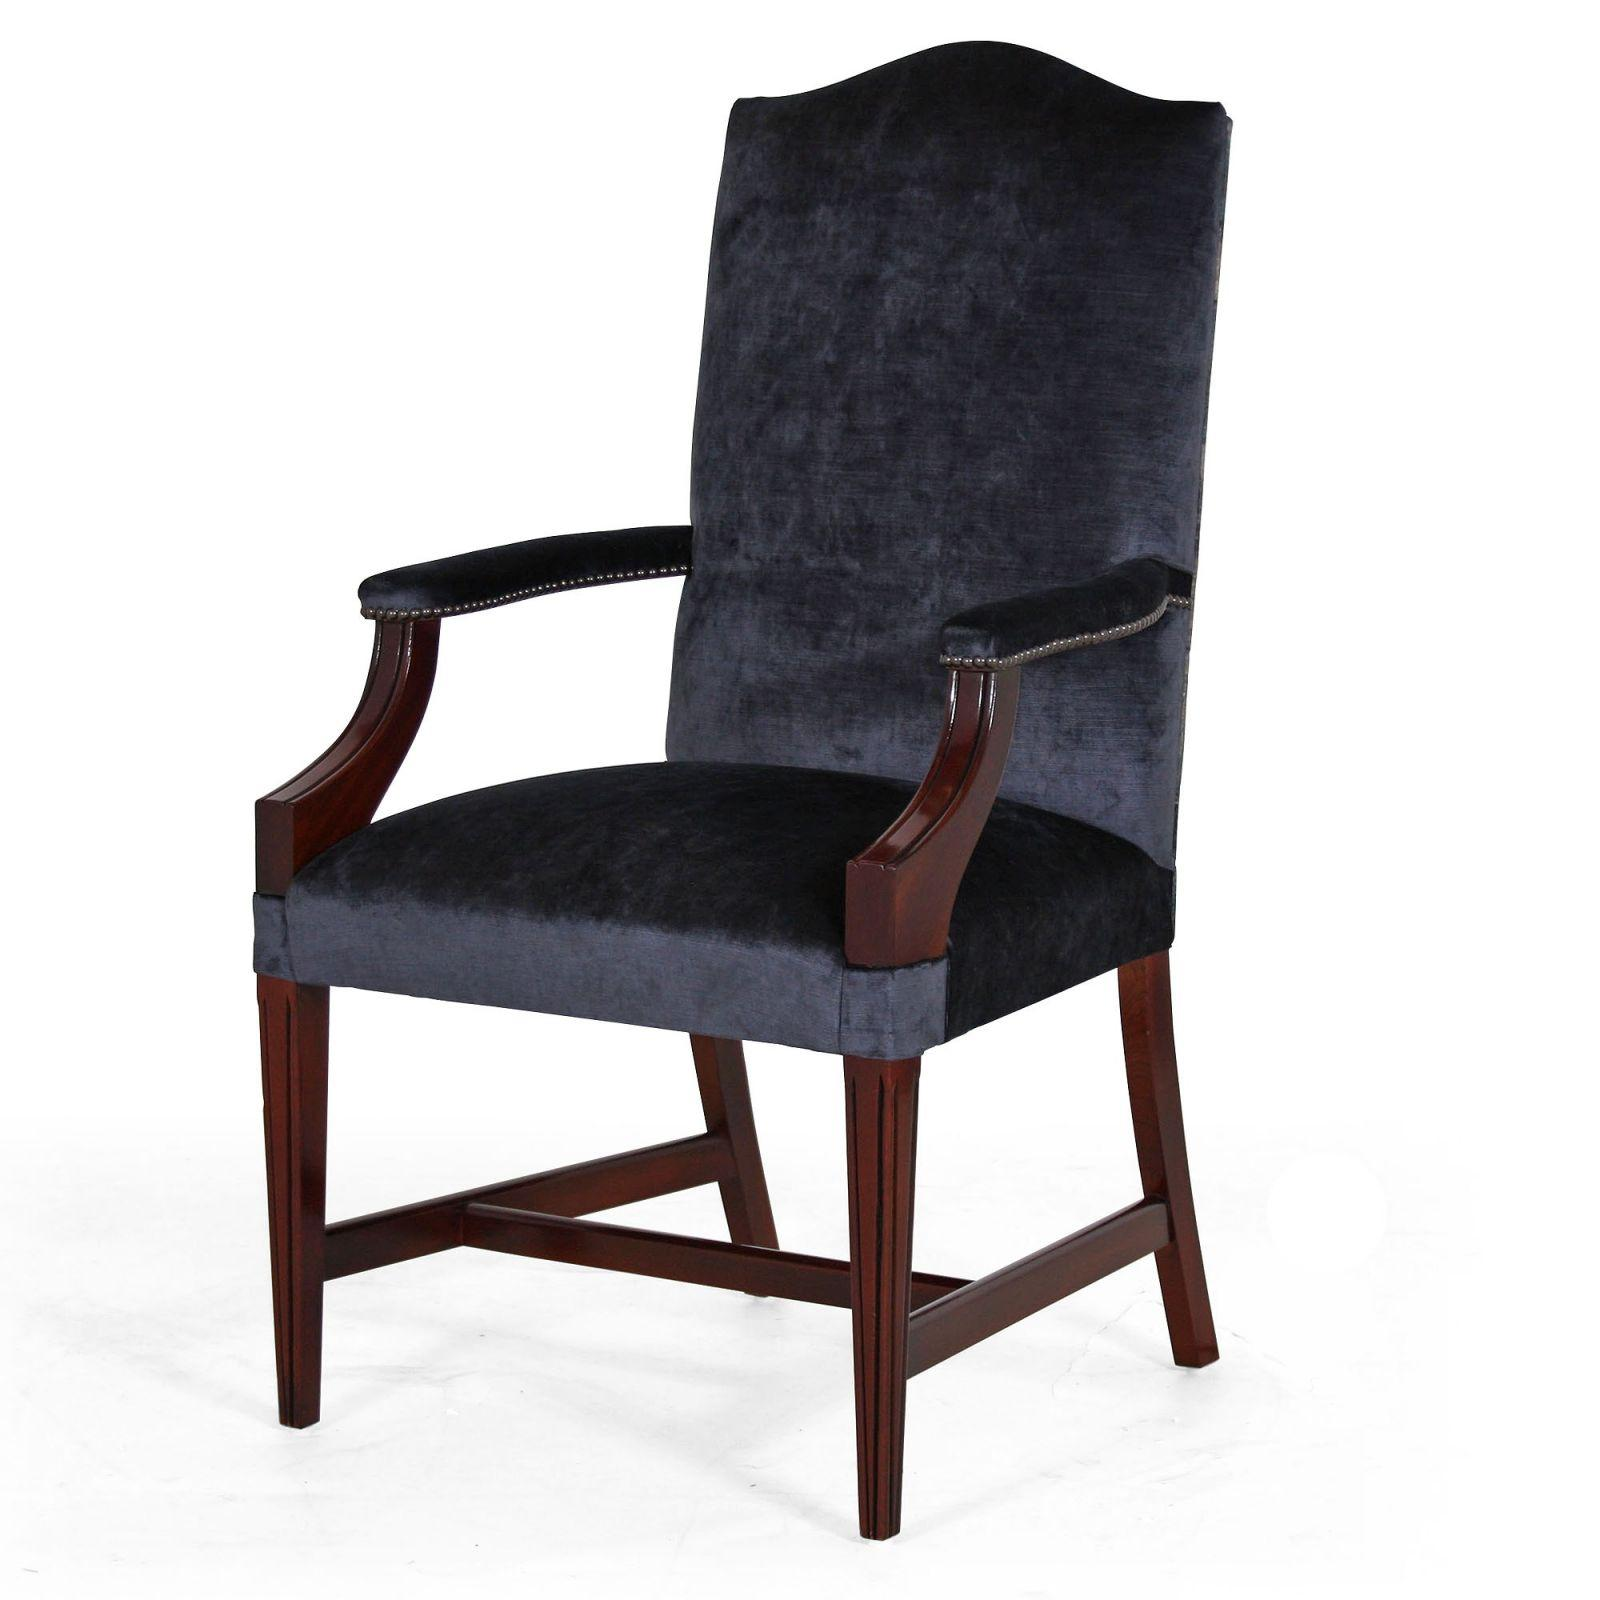 Mahogany upholstered back dining carver in Wemyss Kentia